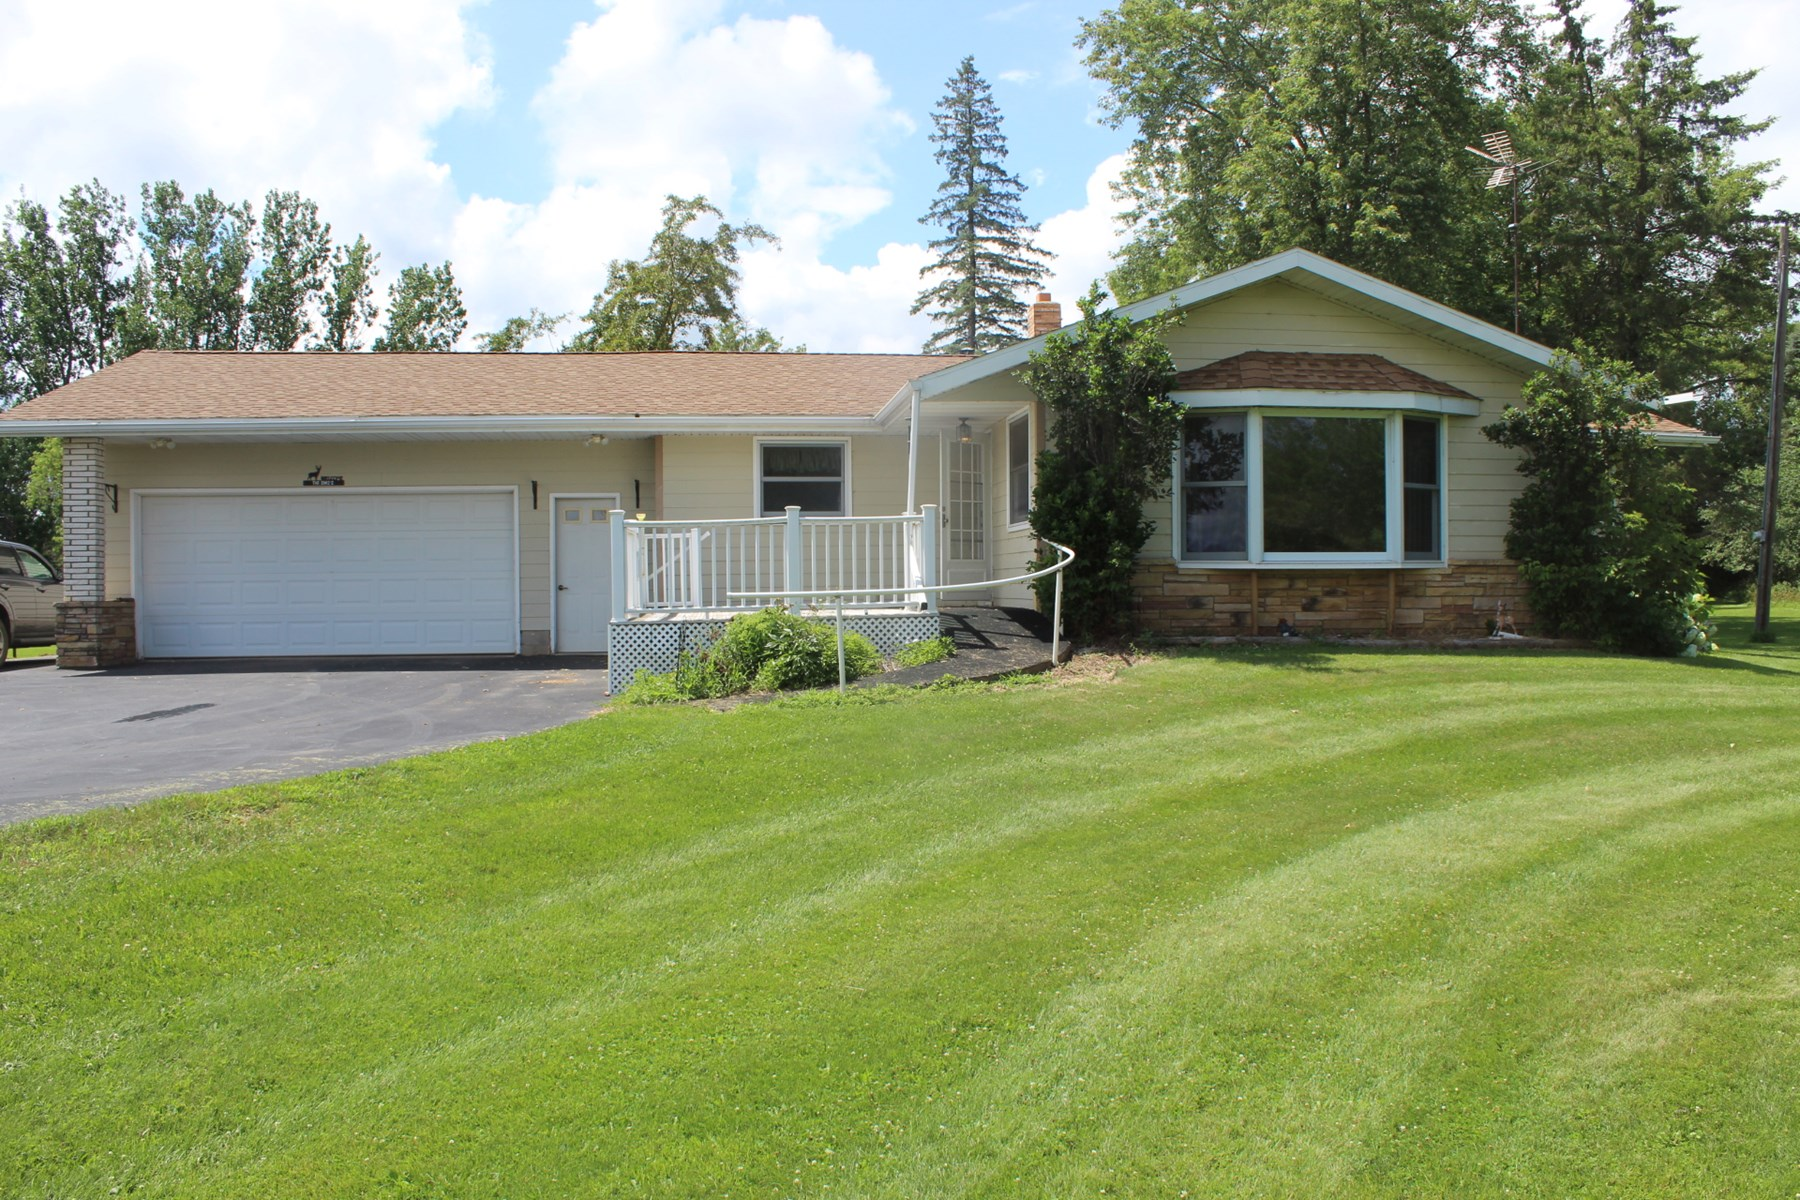 Milaca Country Home for Sale on 19.98 Acres